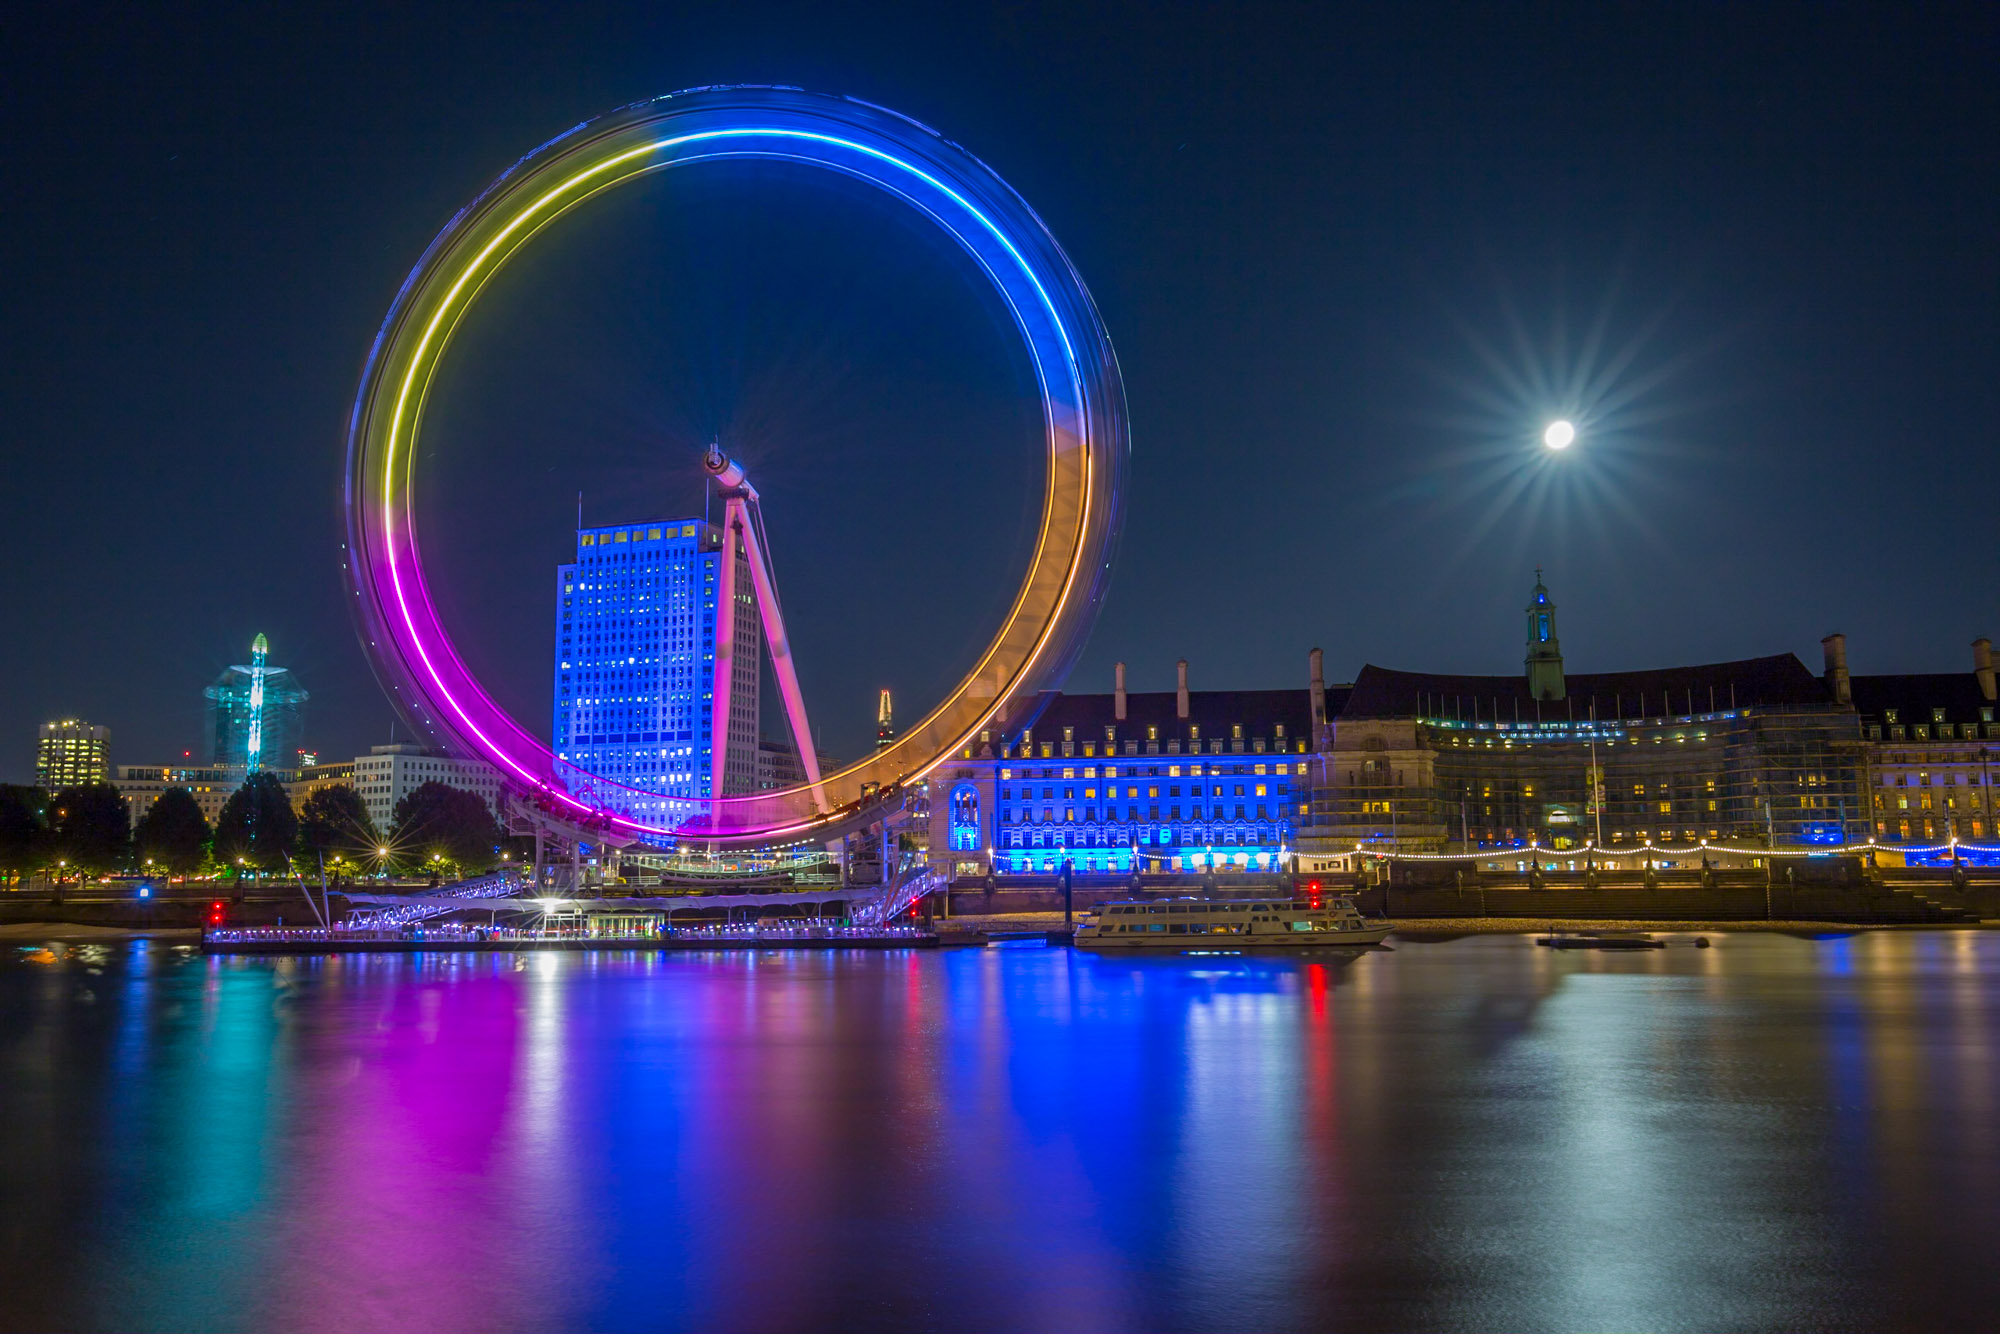 long exposure night photography of a full moon next to the illuminated and rotating London Eye Tourist attraction in London UK